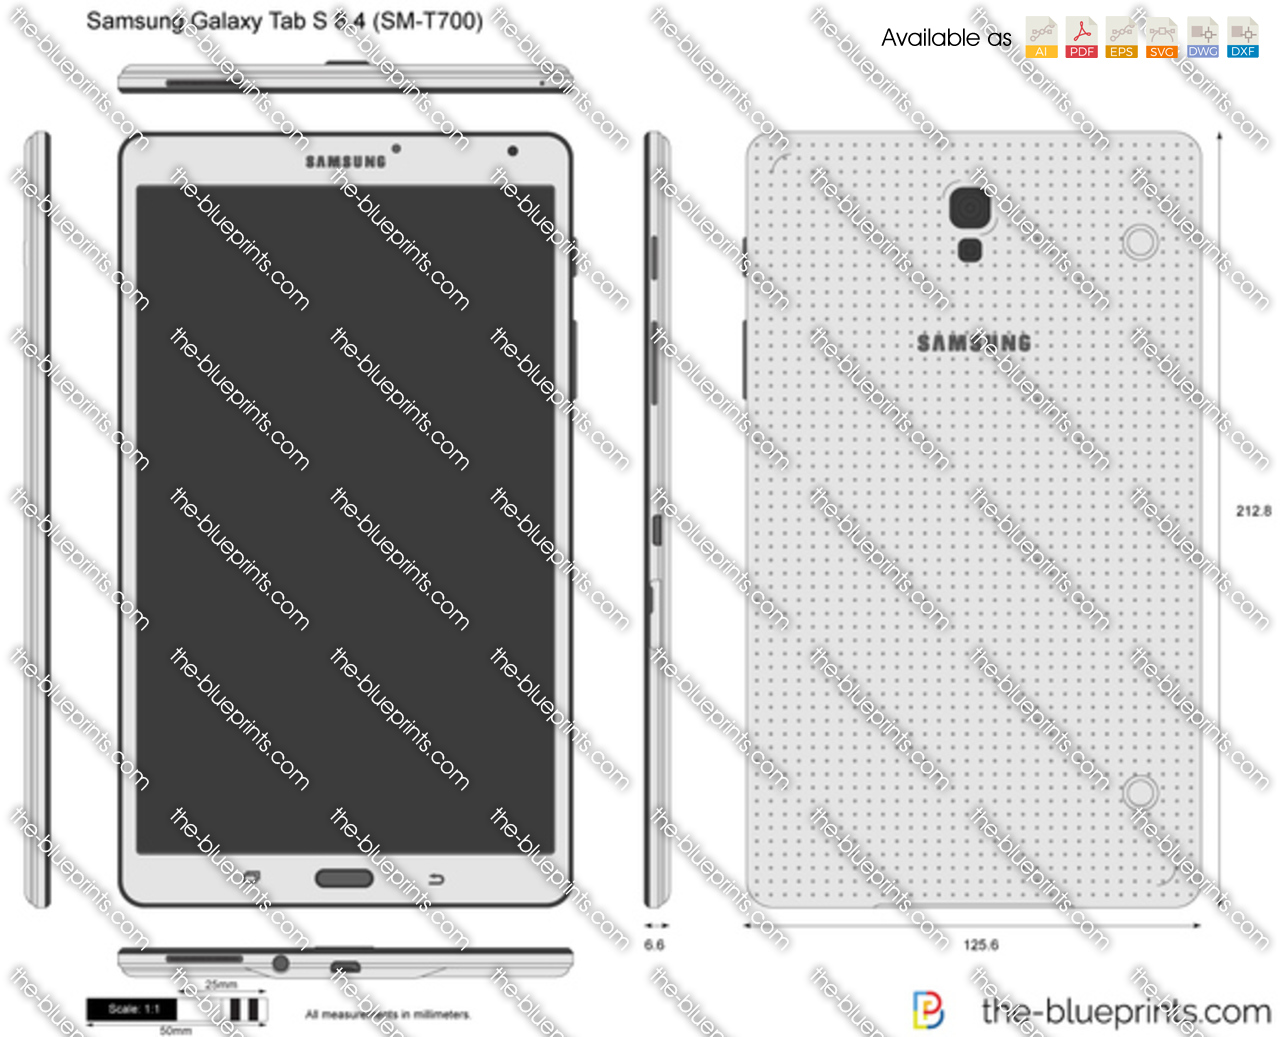 Samsung galaxy tab s 84 sm t700 vector drawing samsung galaxy tab s 84 sm t700 malvernweather Image collections